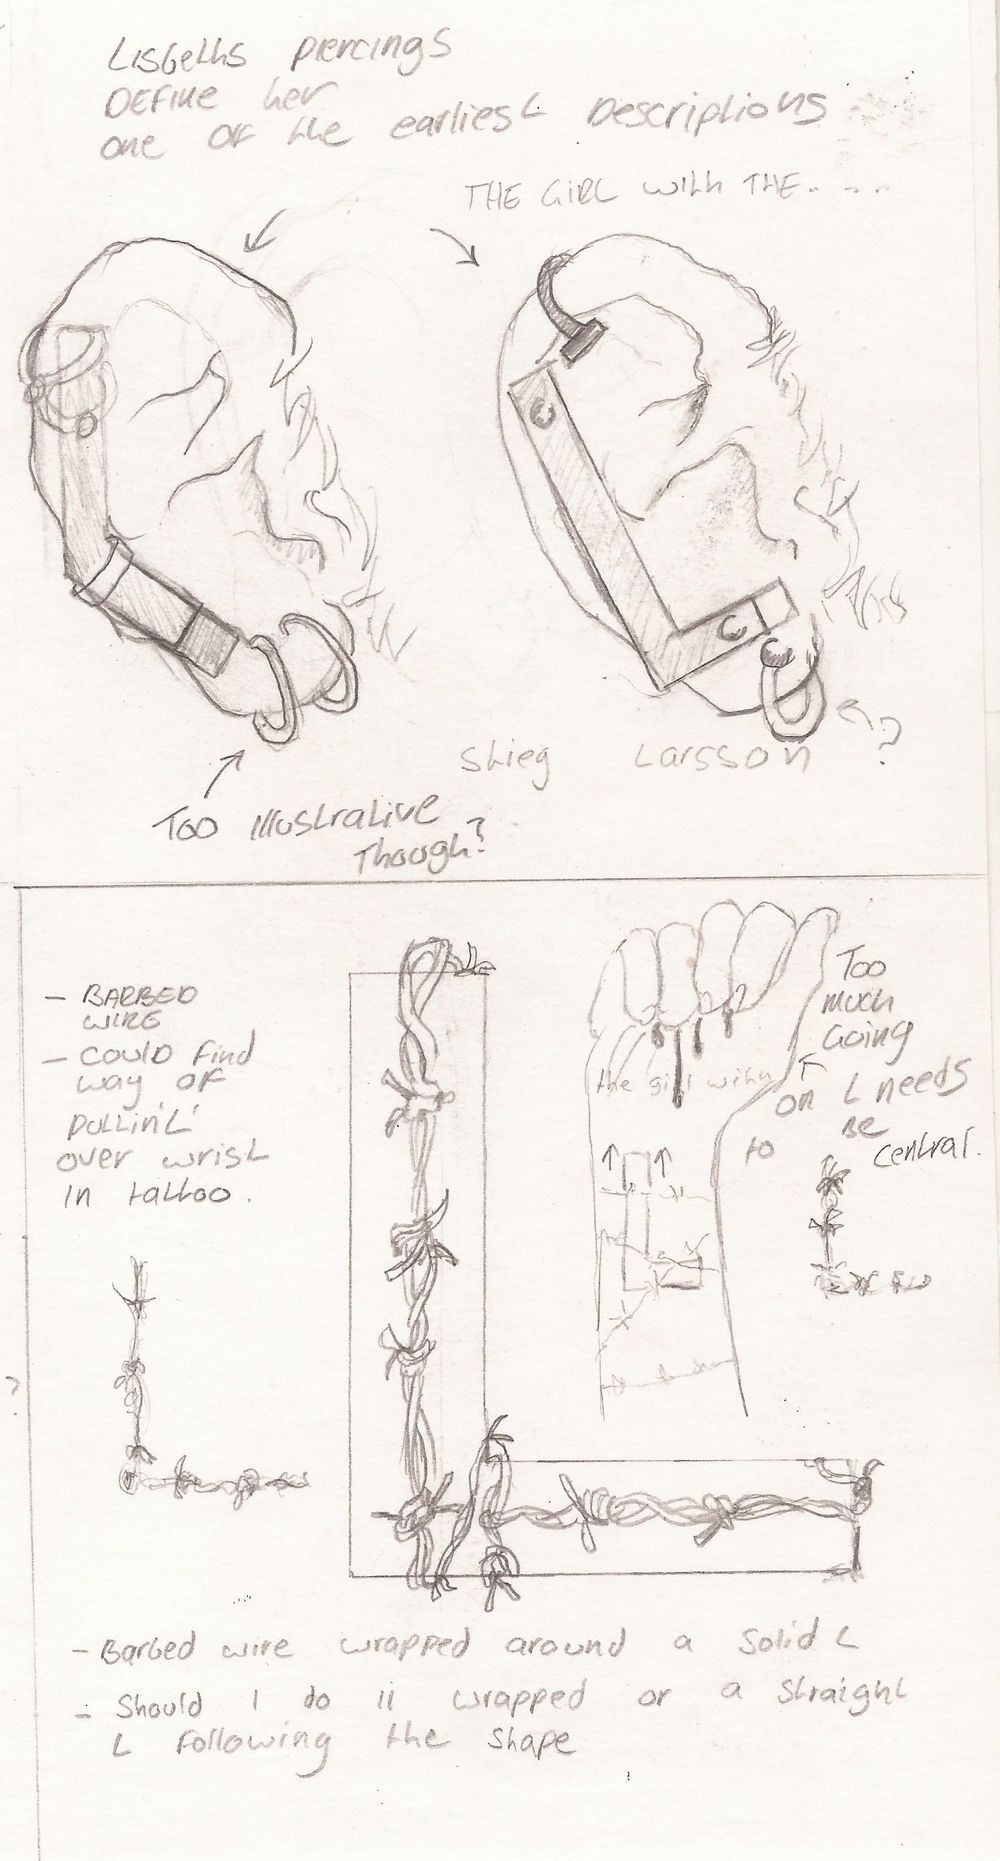 The Girl With The Dragon Tattoo - Stieg Larsson - image 3 - student project